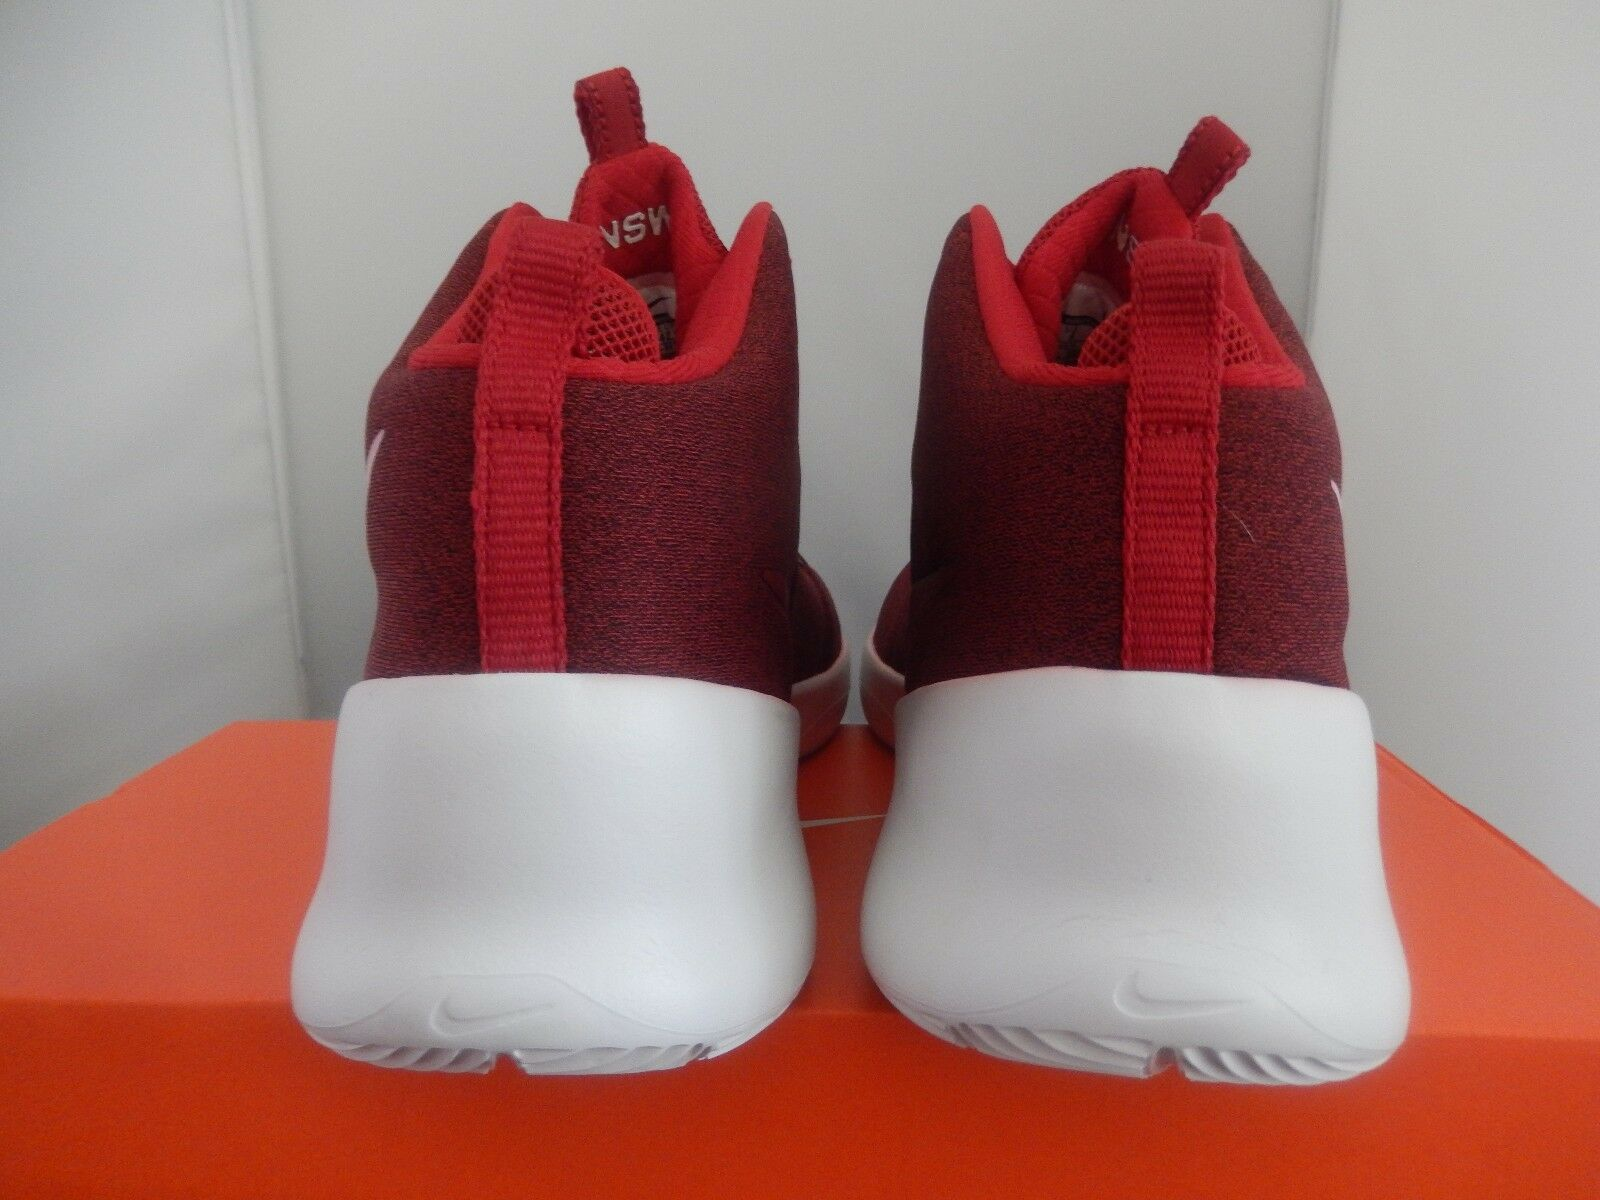 nike fitnessstudio hyperfr3sh fitnessstudio nike red-white sz - 9. 1be2ce